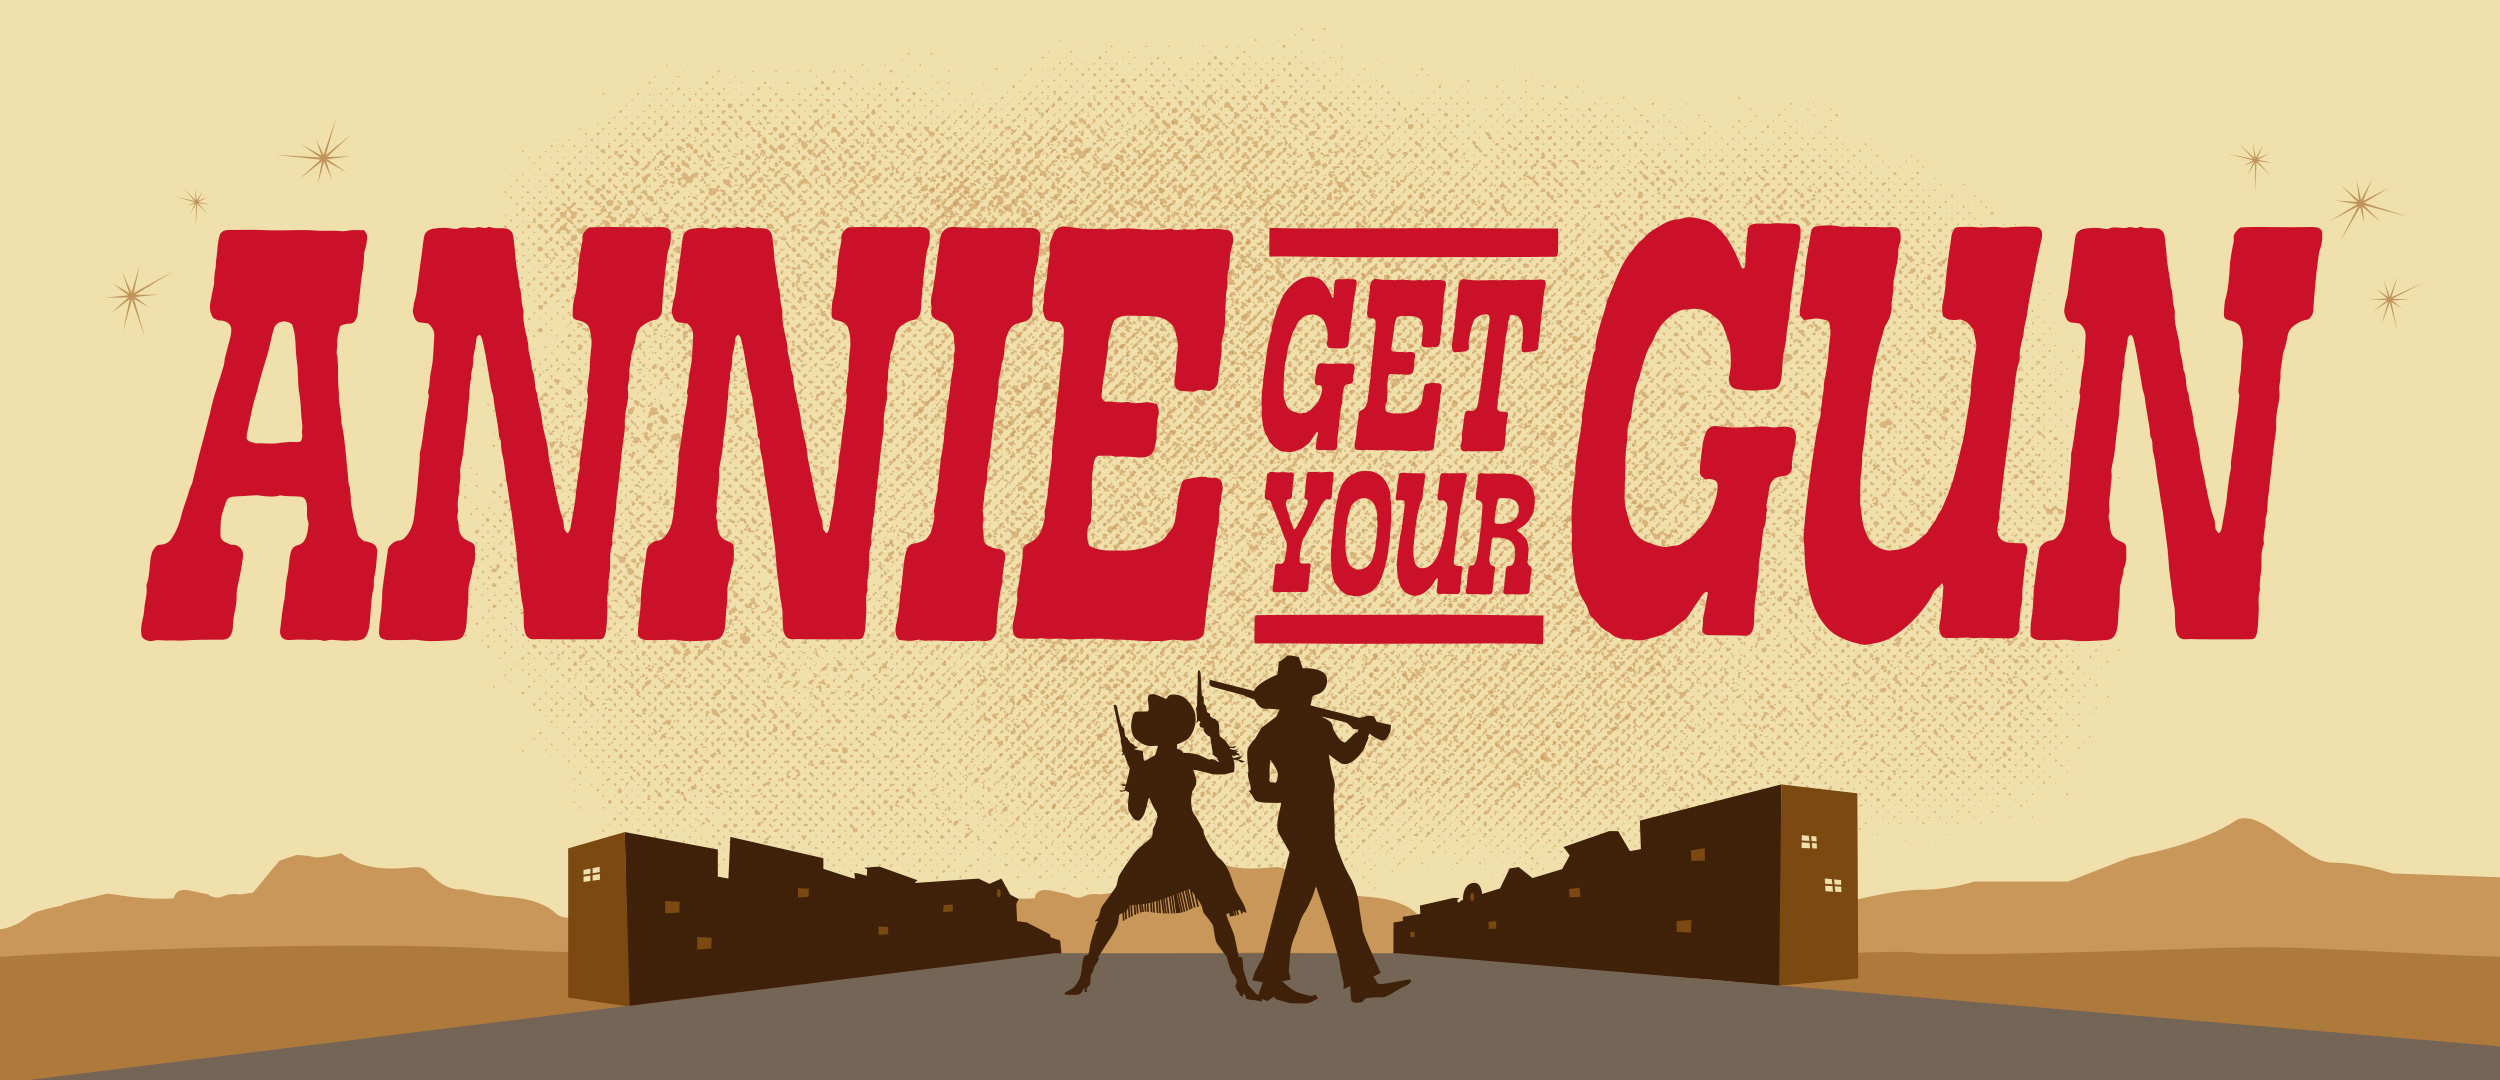 Annie Get Your Gun Show Package Projected Backdrop for Annie Get Your Gun, Show, Theater, Western